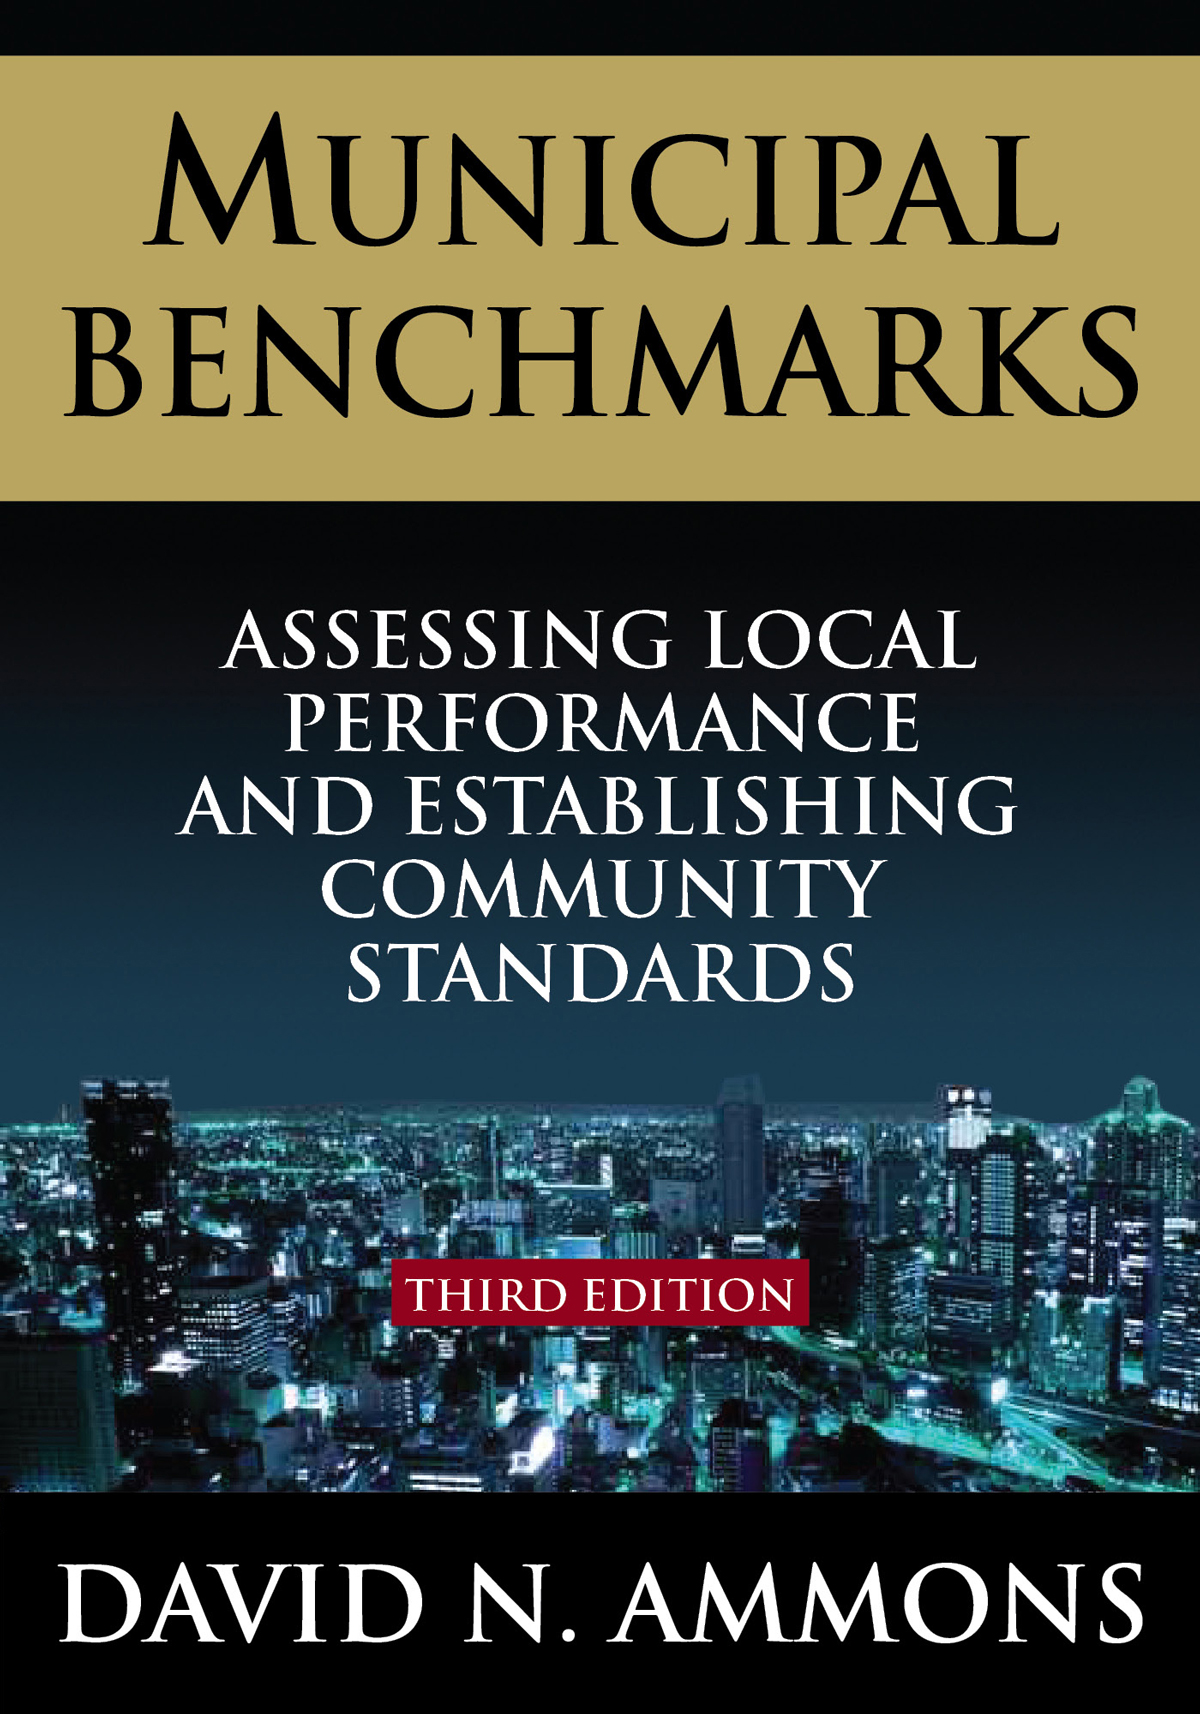 Cover image for Municipal Benchmarks: Assessing Local Performance and Establishing Community Standards, Third Edition